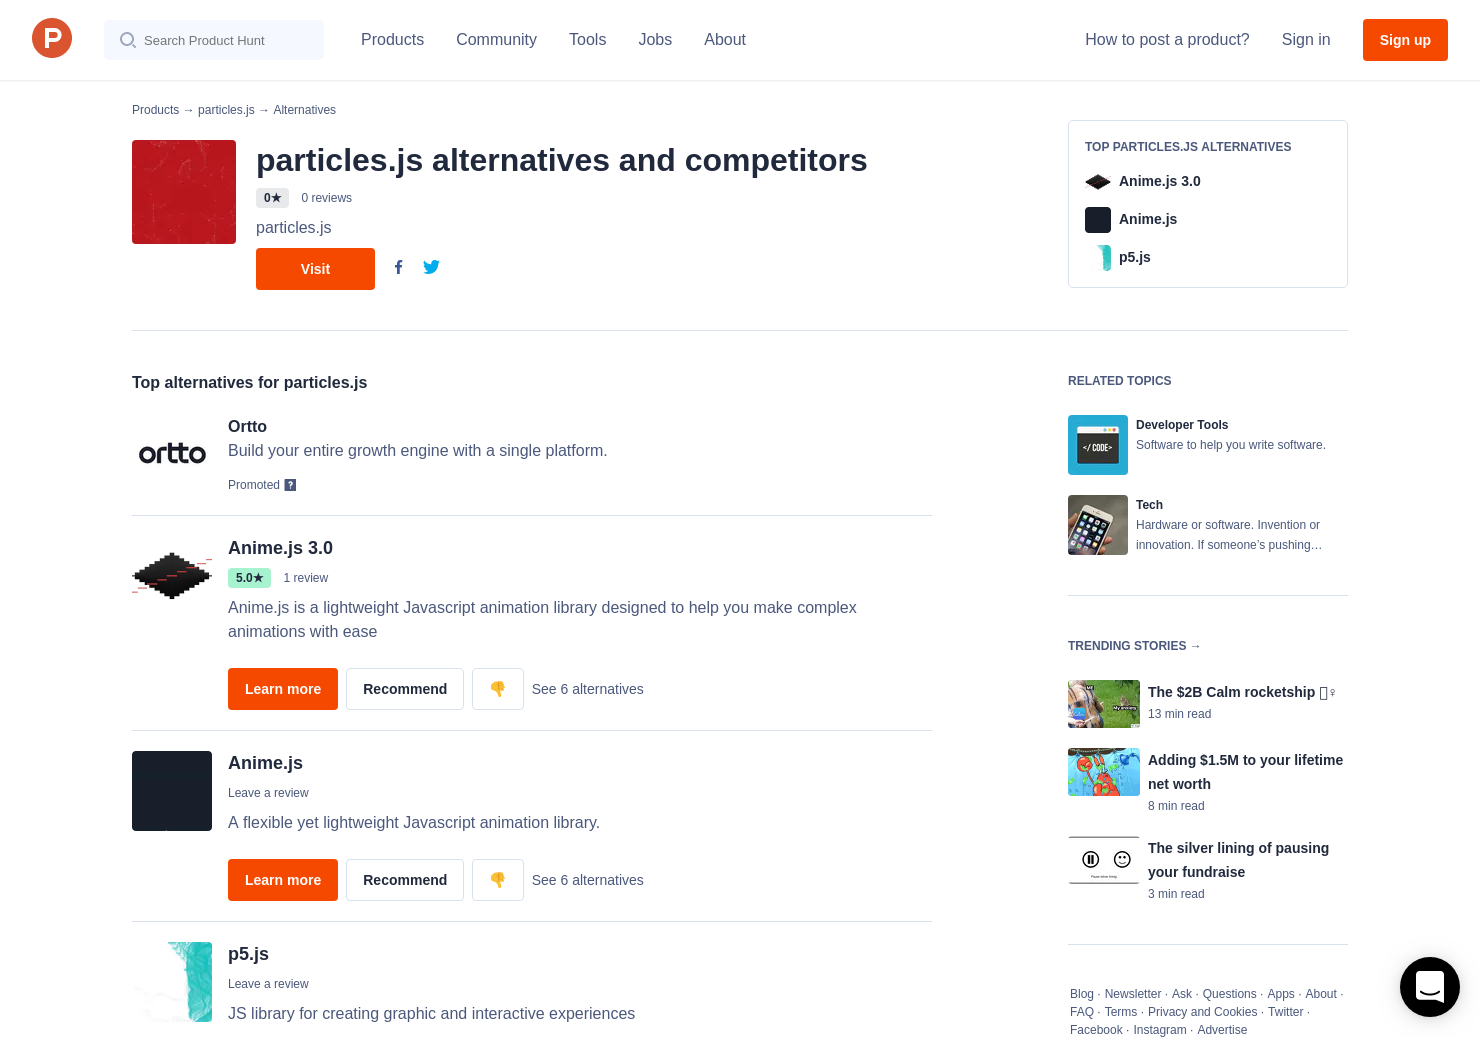 12 Alternatives to particles js | Product Hunt